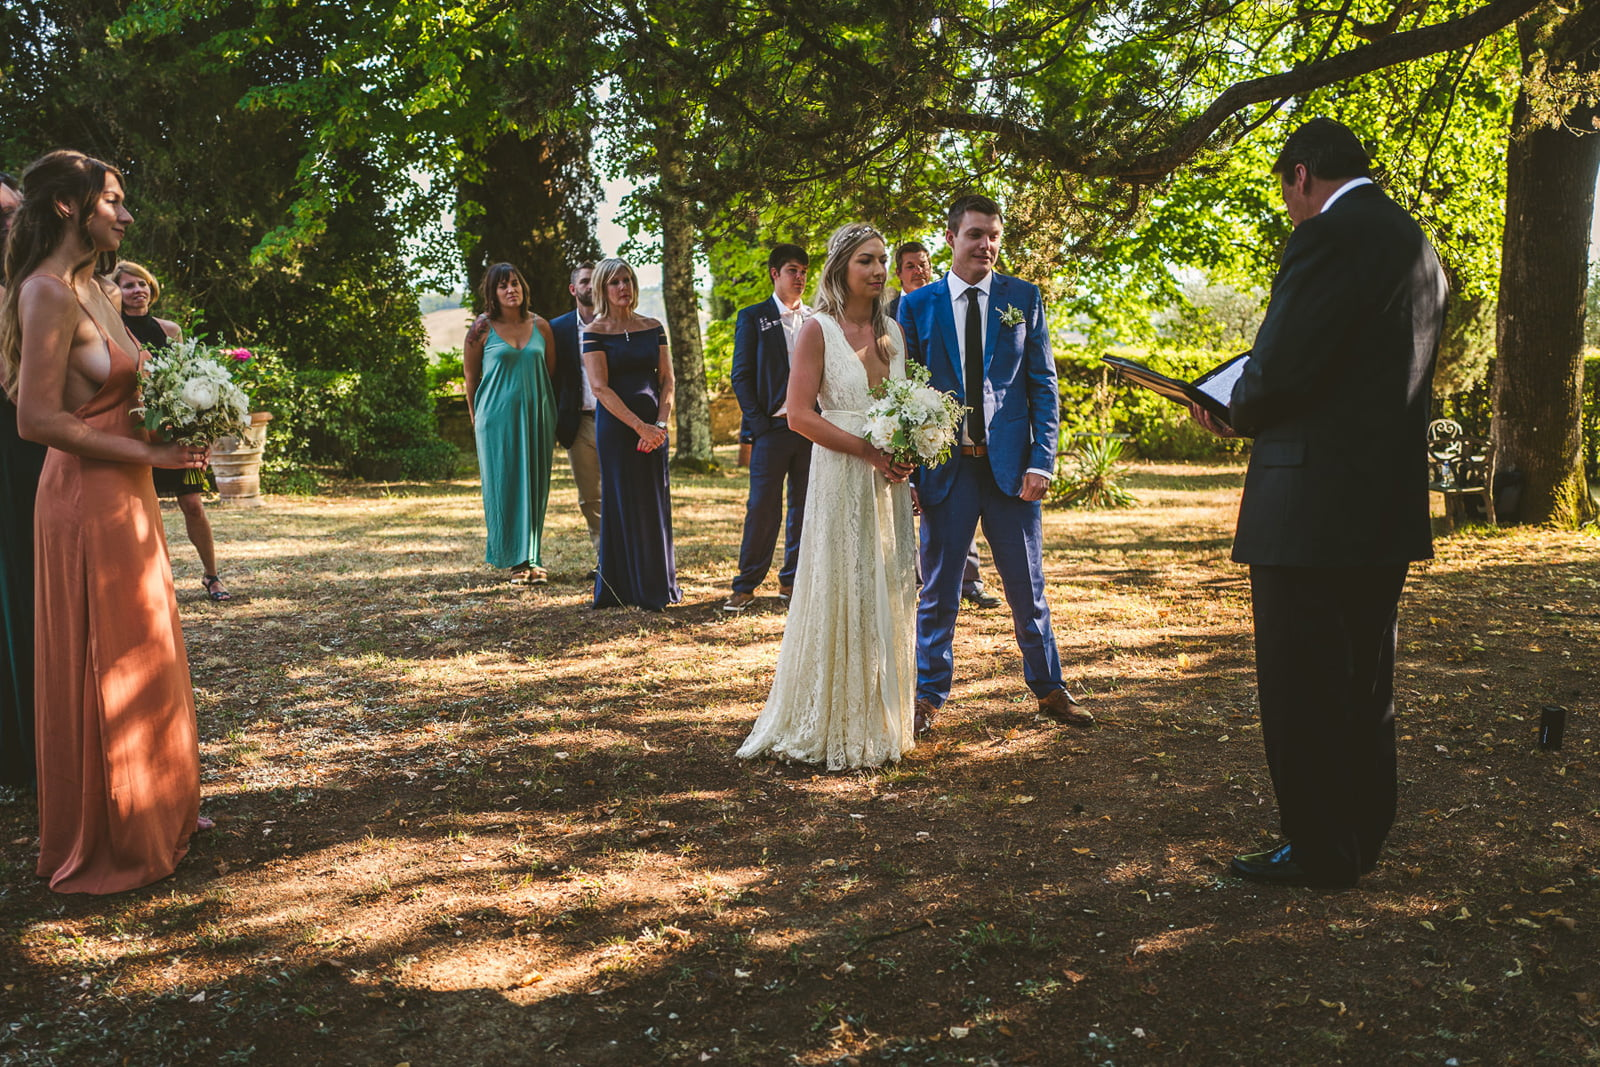 A+L Wedding at Montechiaro, Siena by Federico Pannacci 50